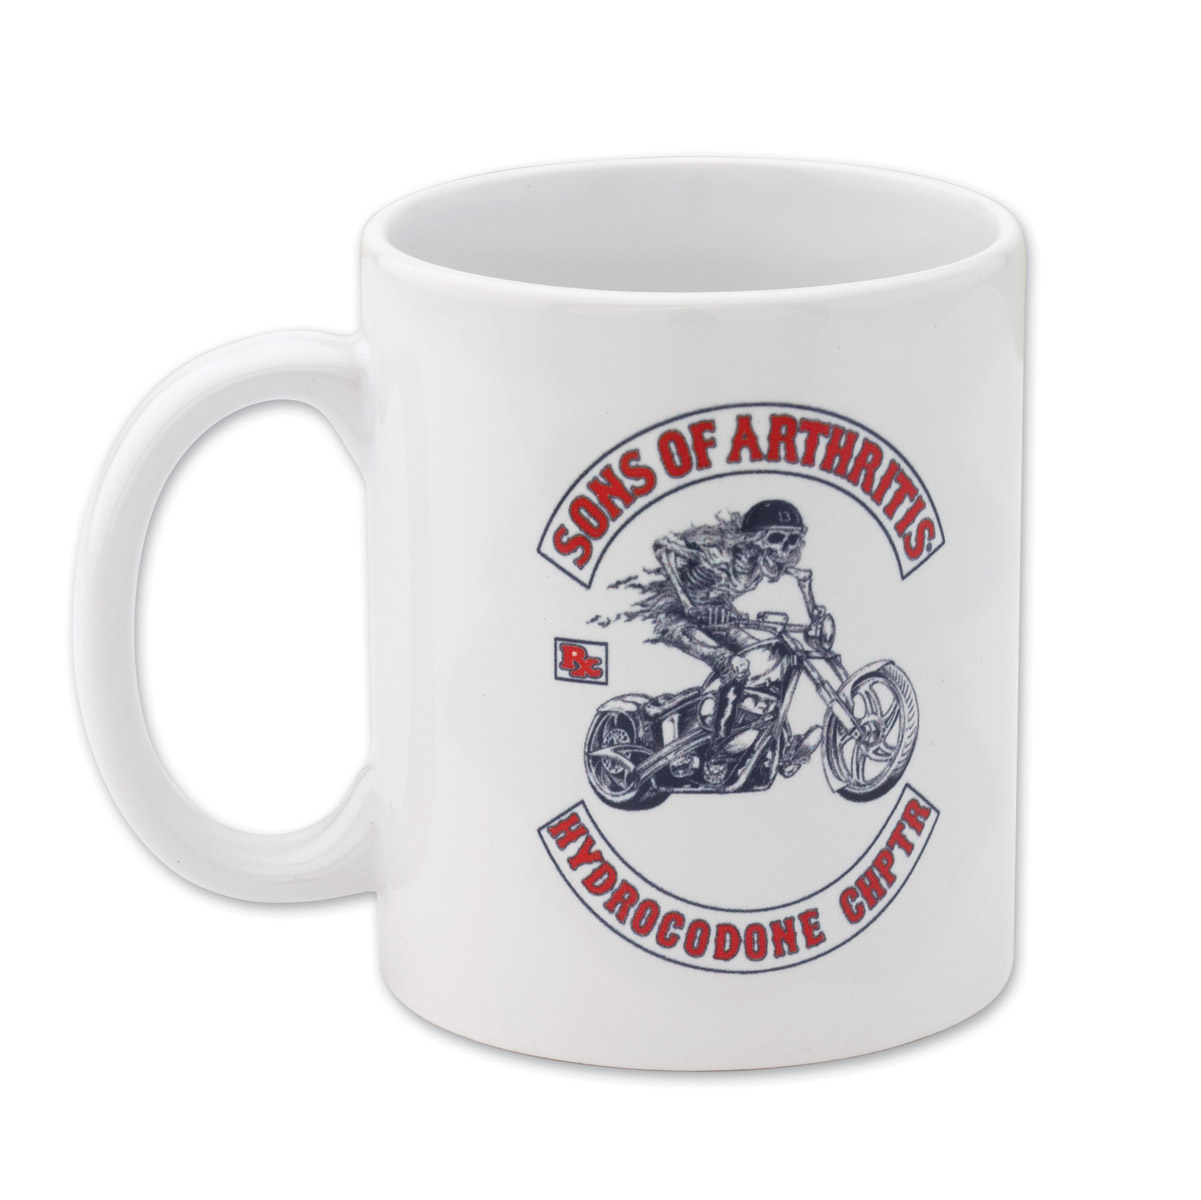 Sons of Arthritis Hydrocodone Chapter Mug